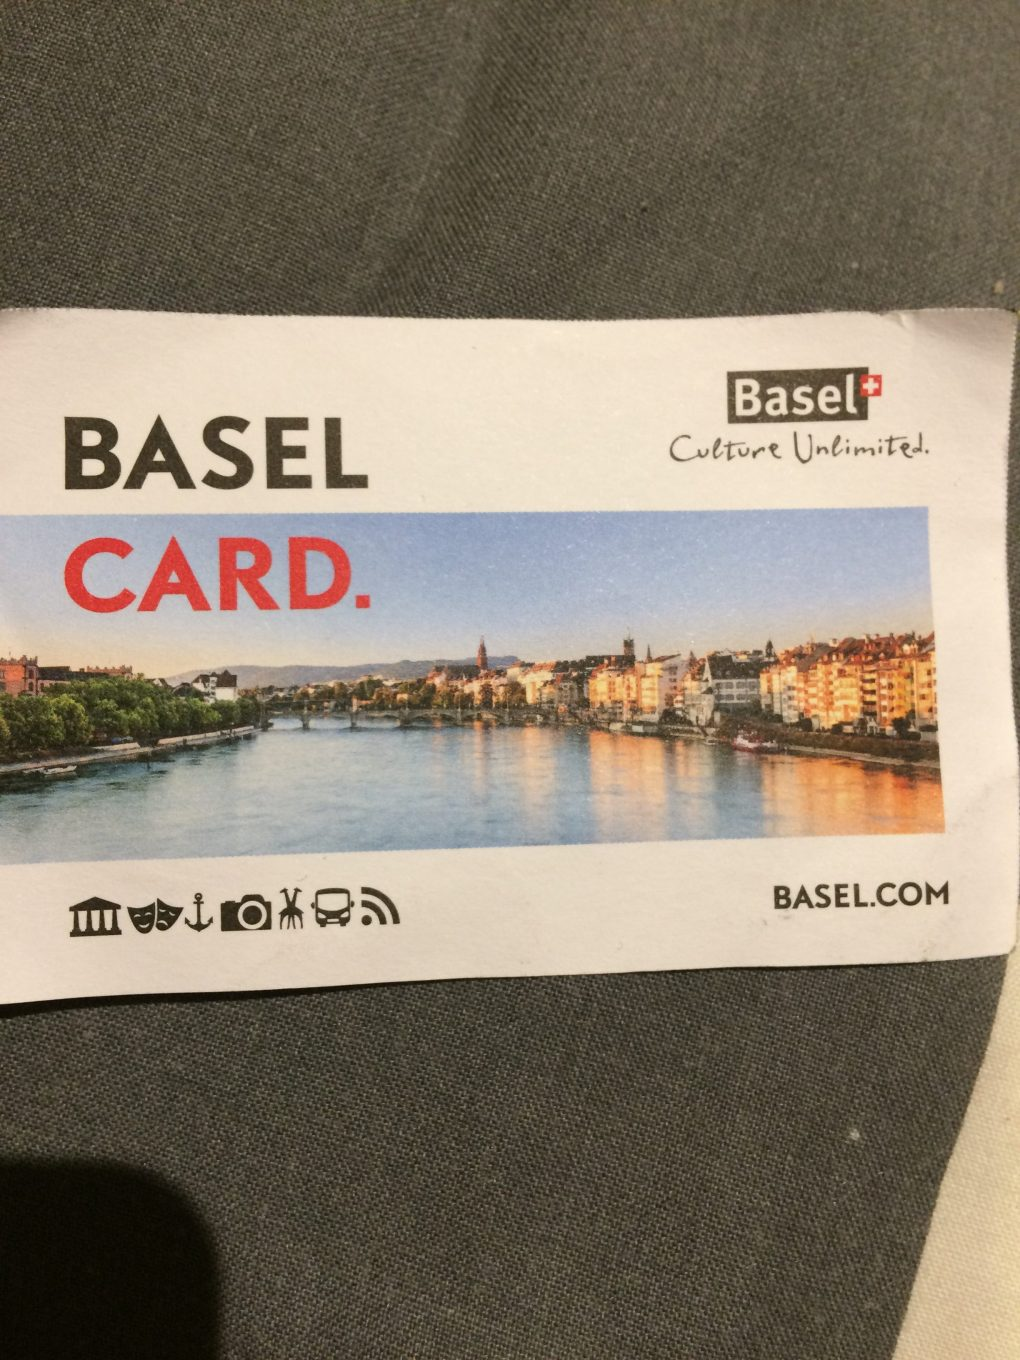 Basel Switzerland on a budget. The Basel City Card